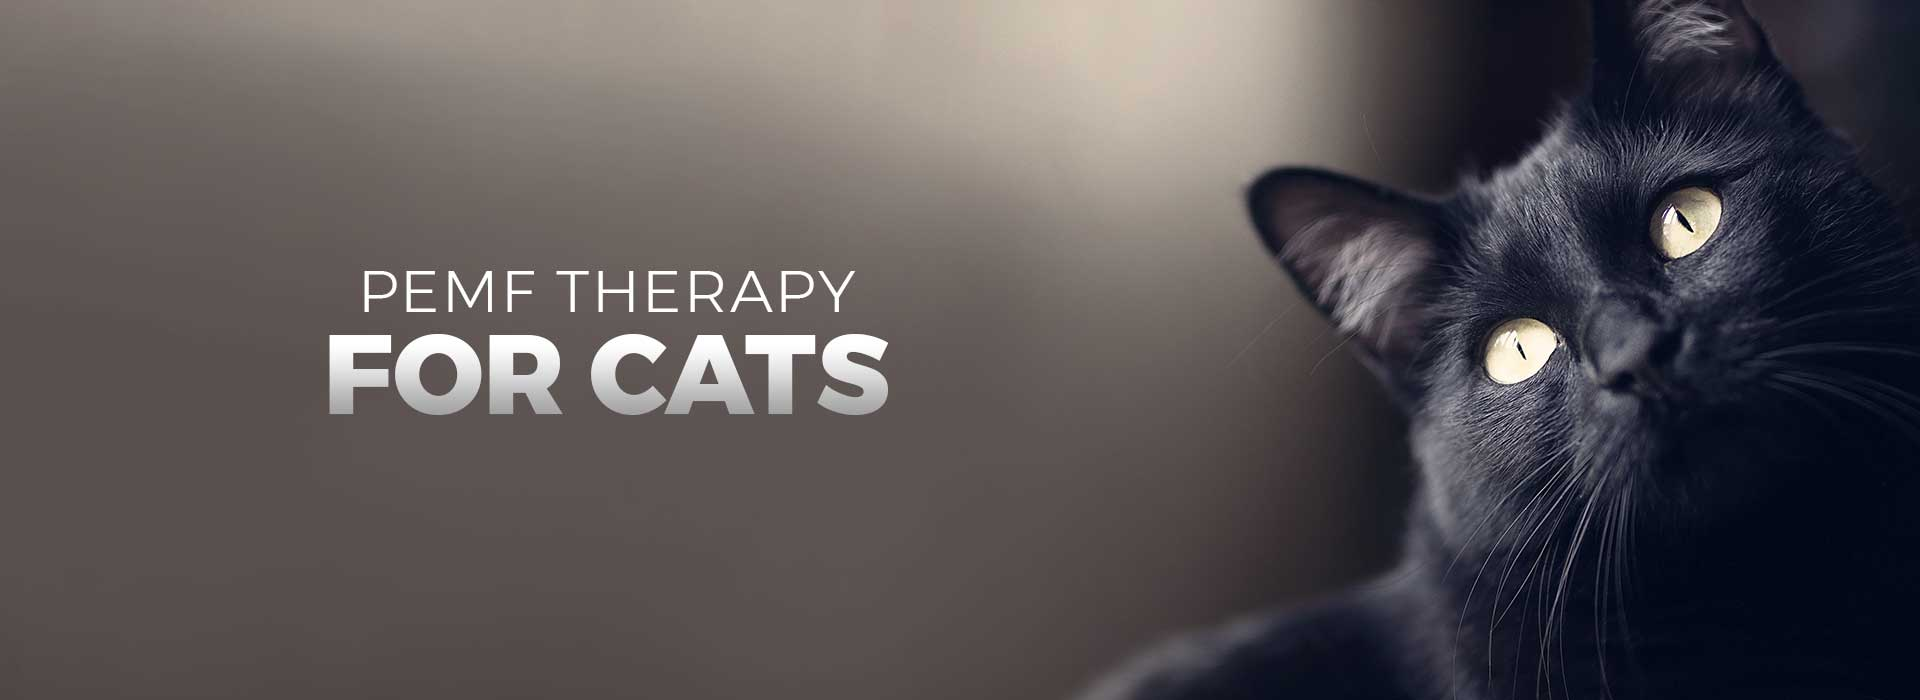 PEMF Therapy for Cats